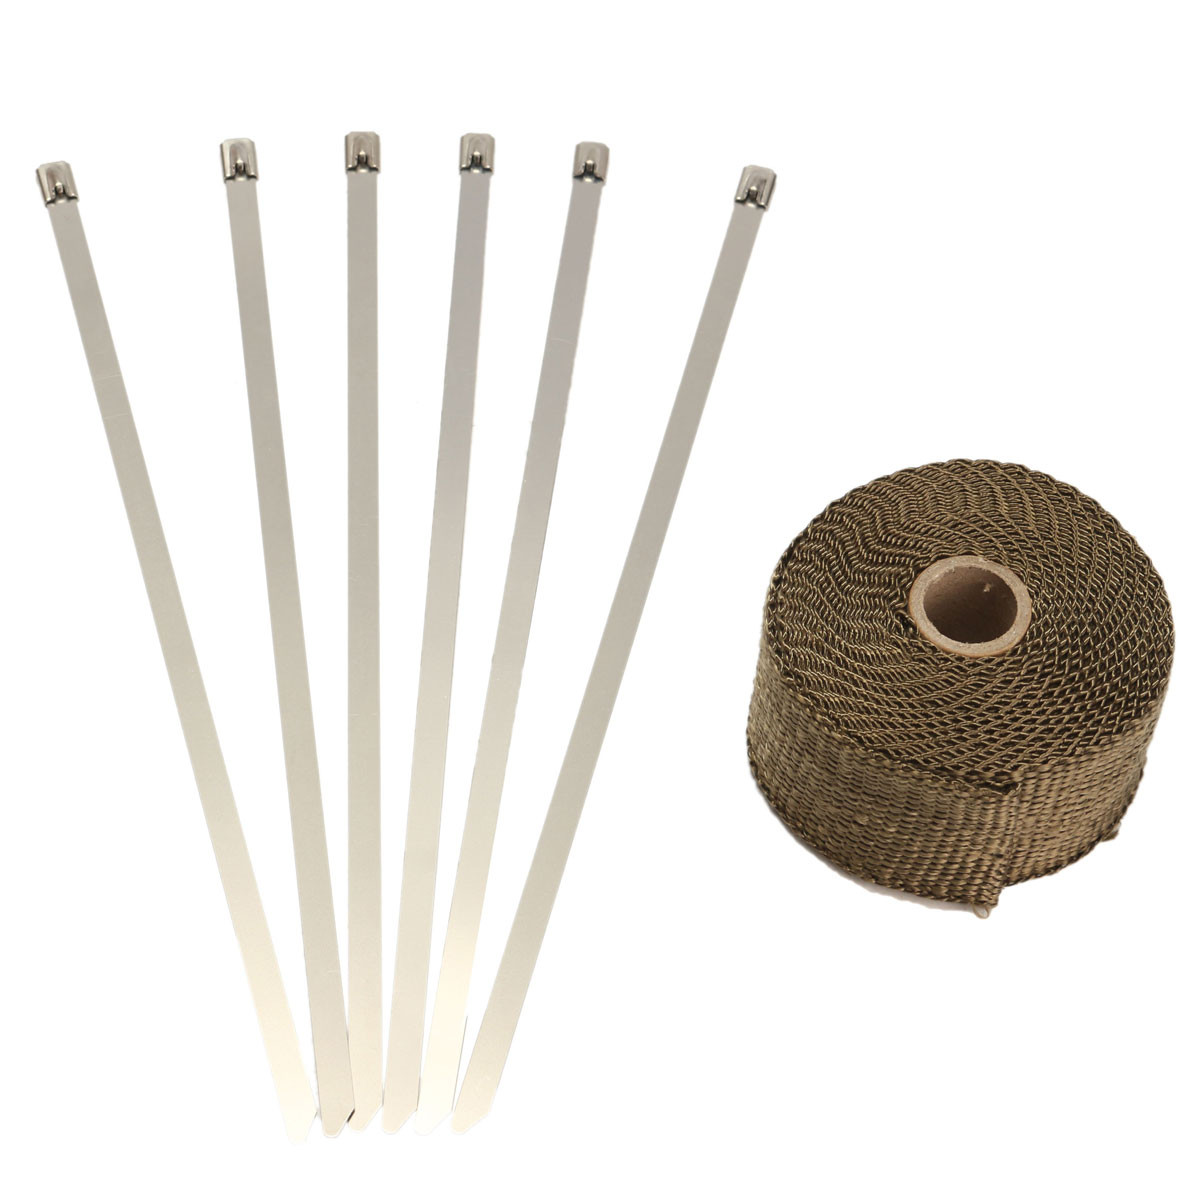 508cm-x-159-mm-x-5m-titanium-exhaust-header-heat-wrap-downpipe-insulation-bandage-tape-roll-with-stainless-ties-kit